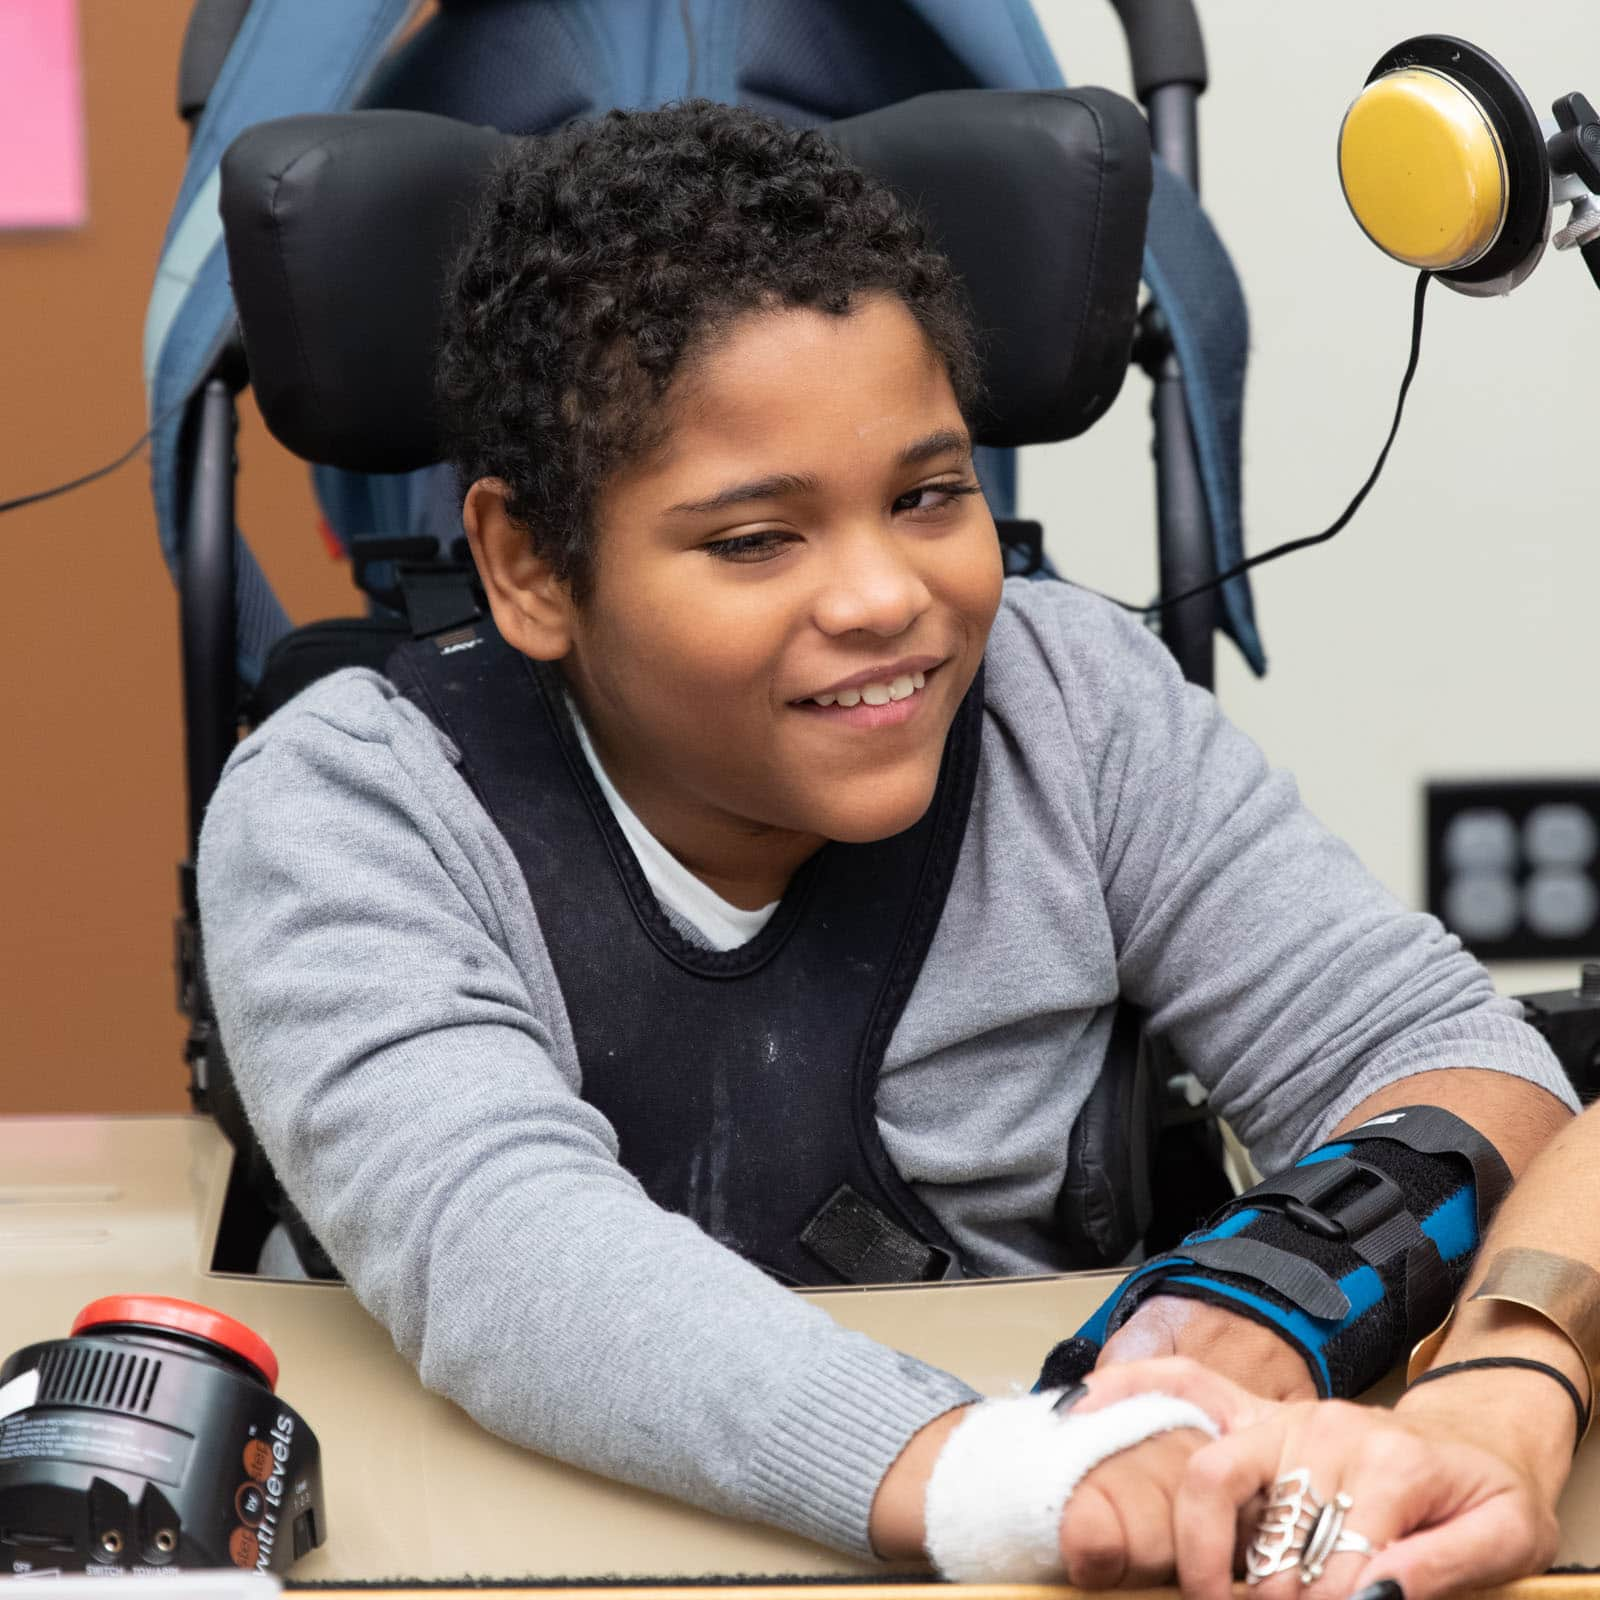 A boy sits in a chair with switches.